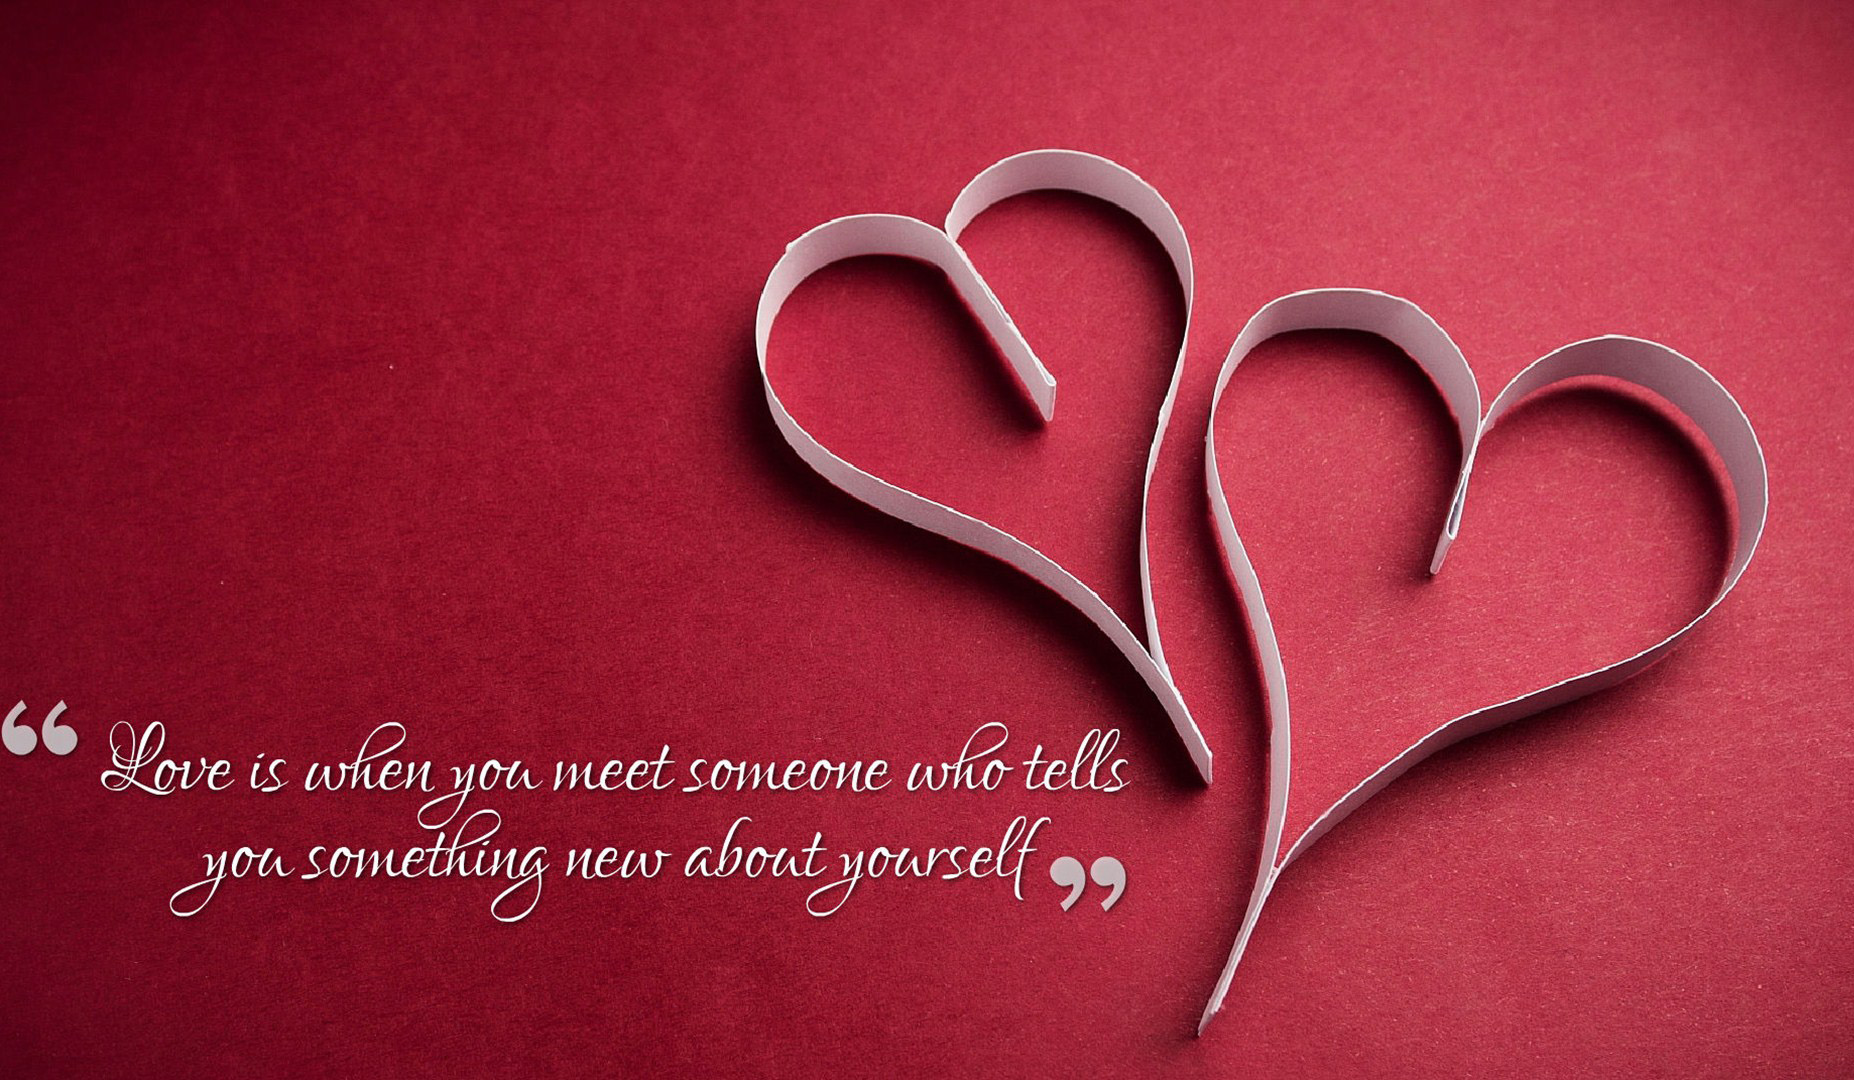 Collection of Love Wallpapers With Quotes on HDWallpapers 1854x1080